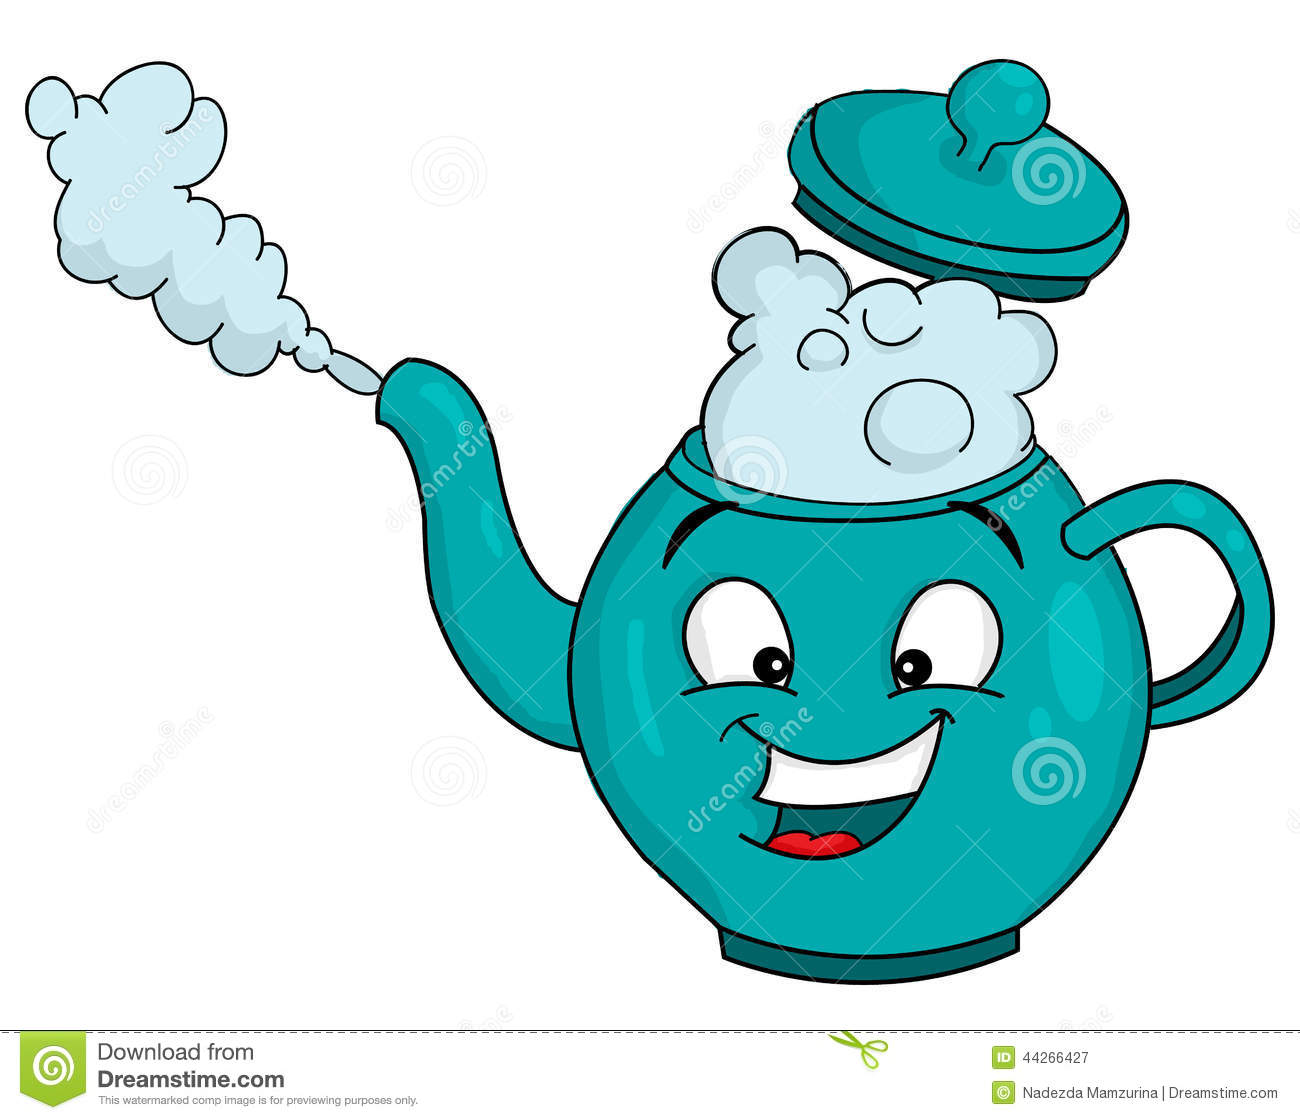 Boiling kettle clipart 4 » Clipart Station.